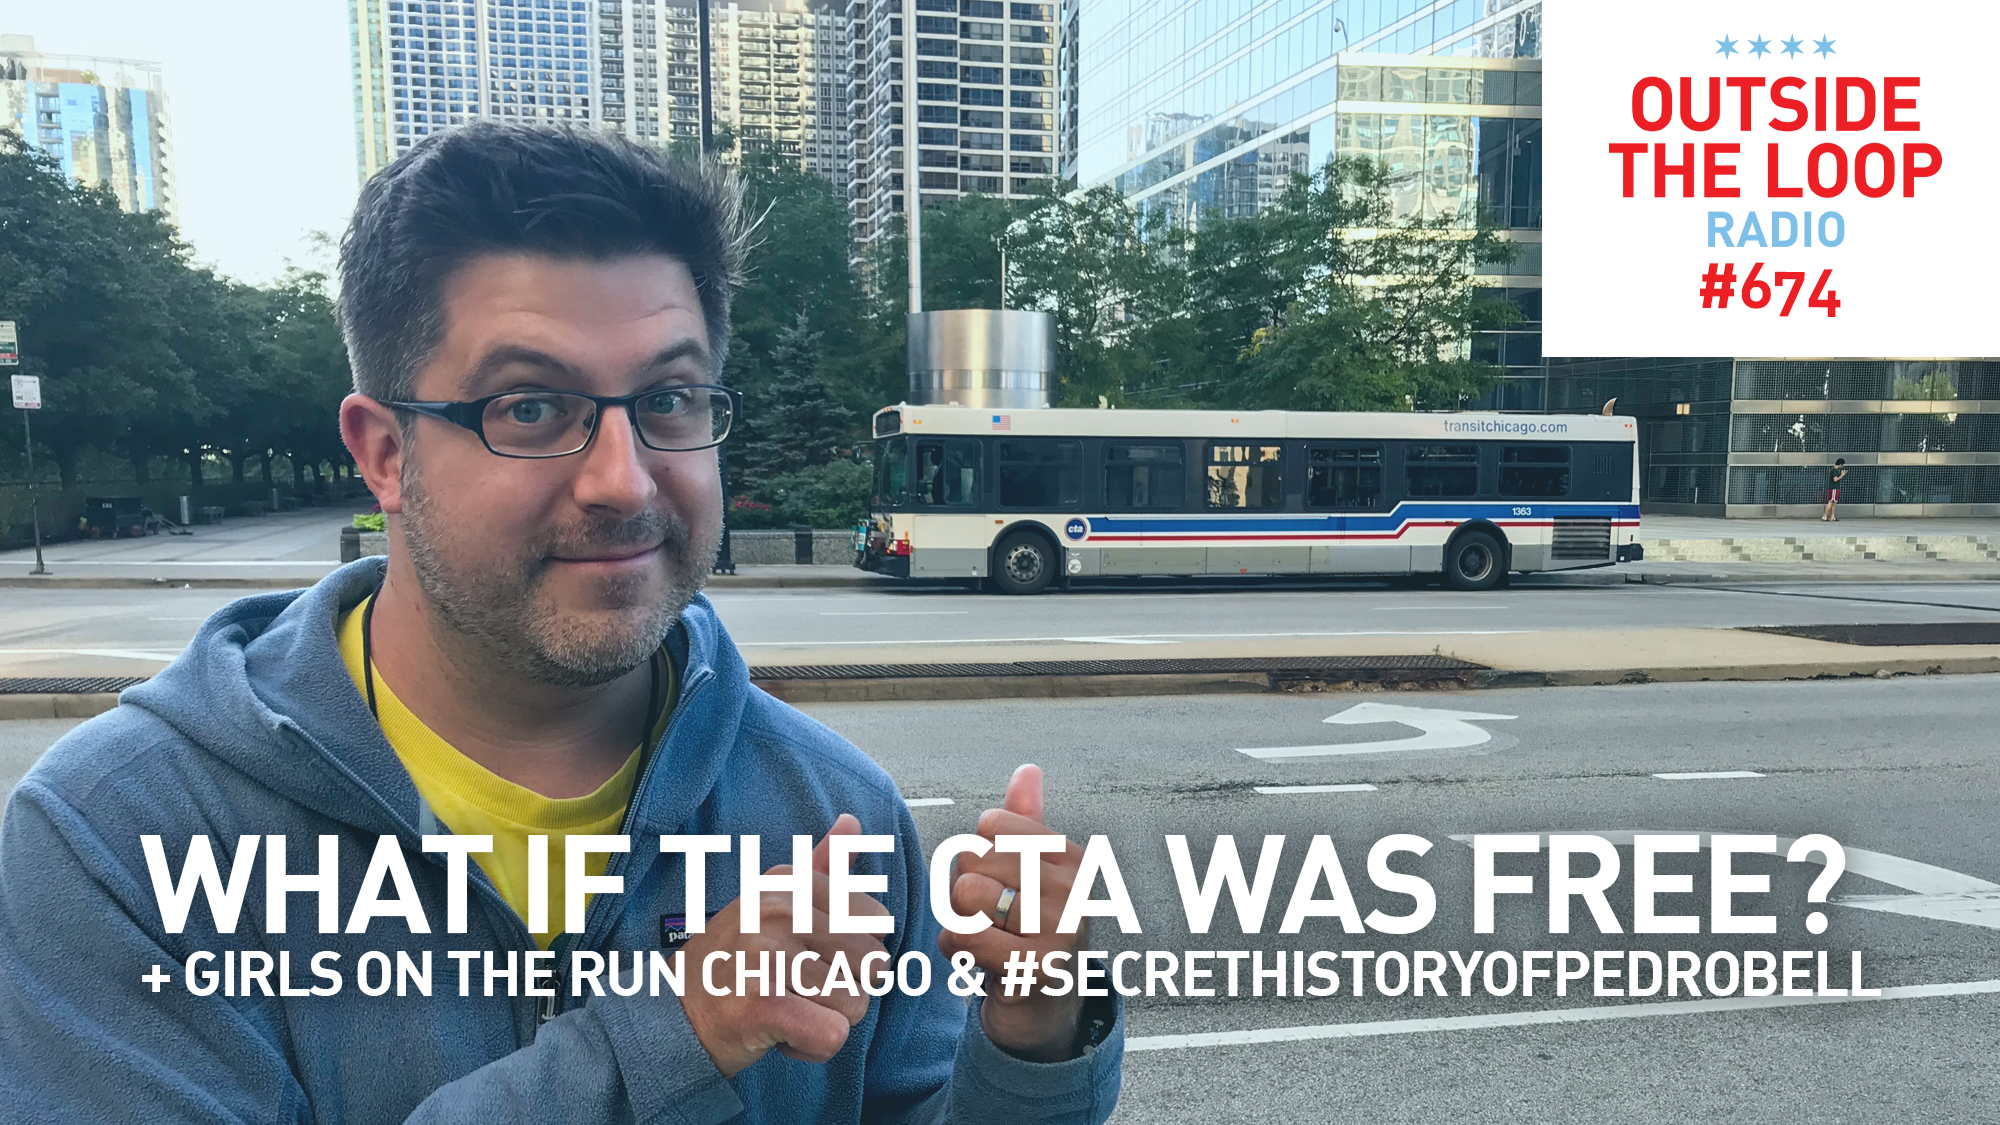 Mike Stephen and a lovely CTA bus.